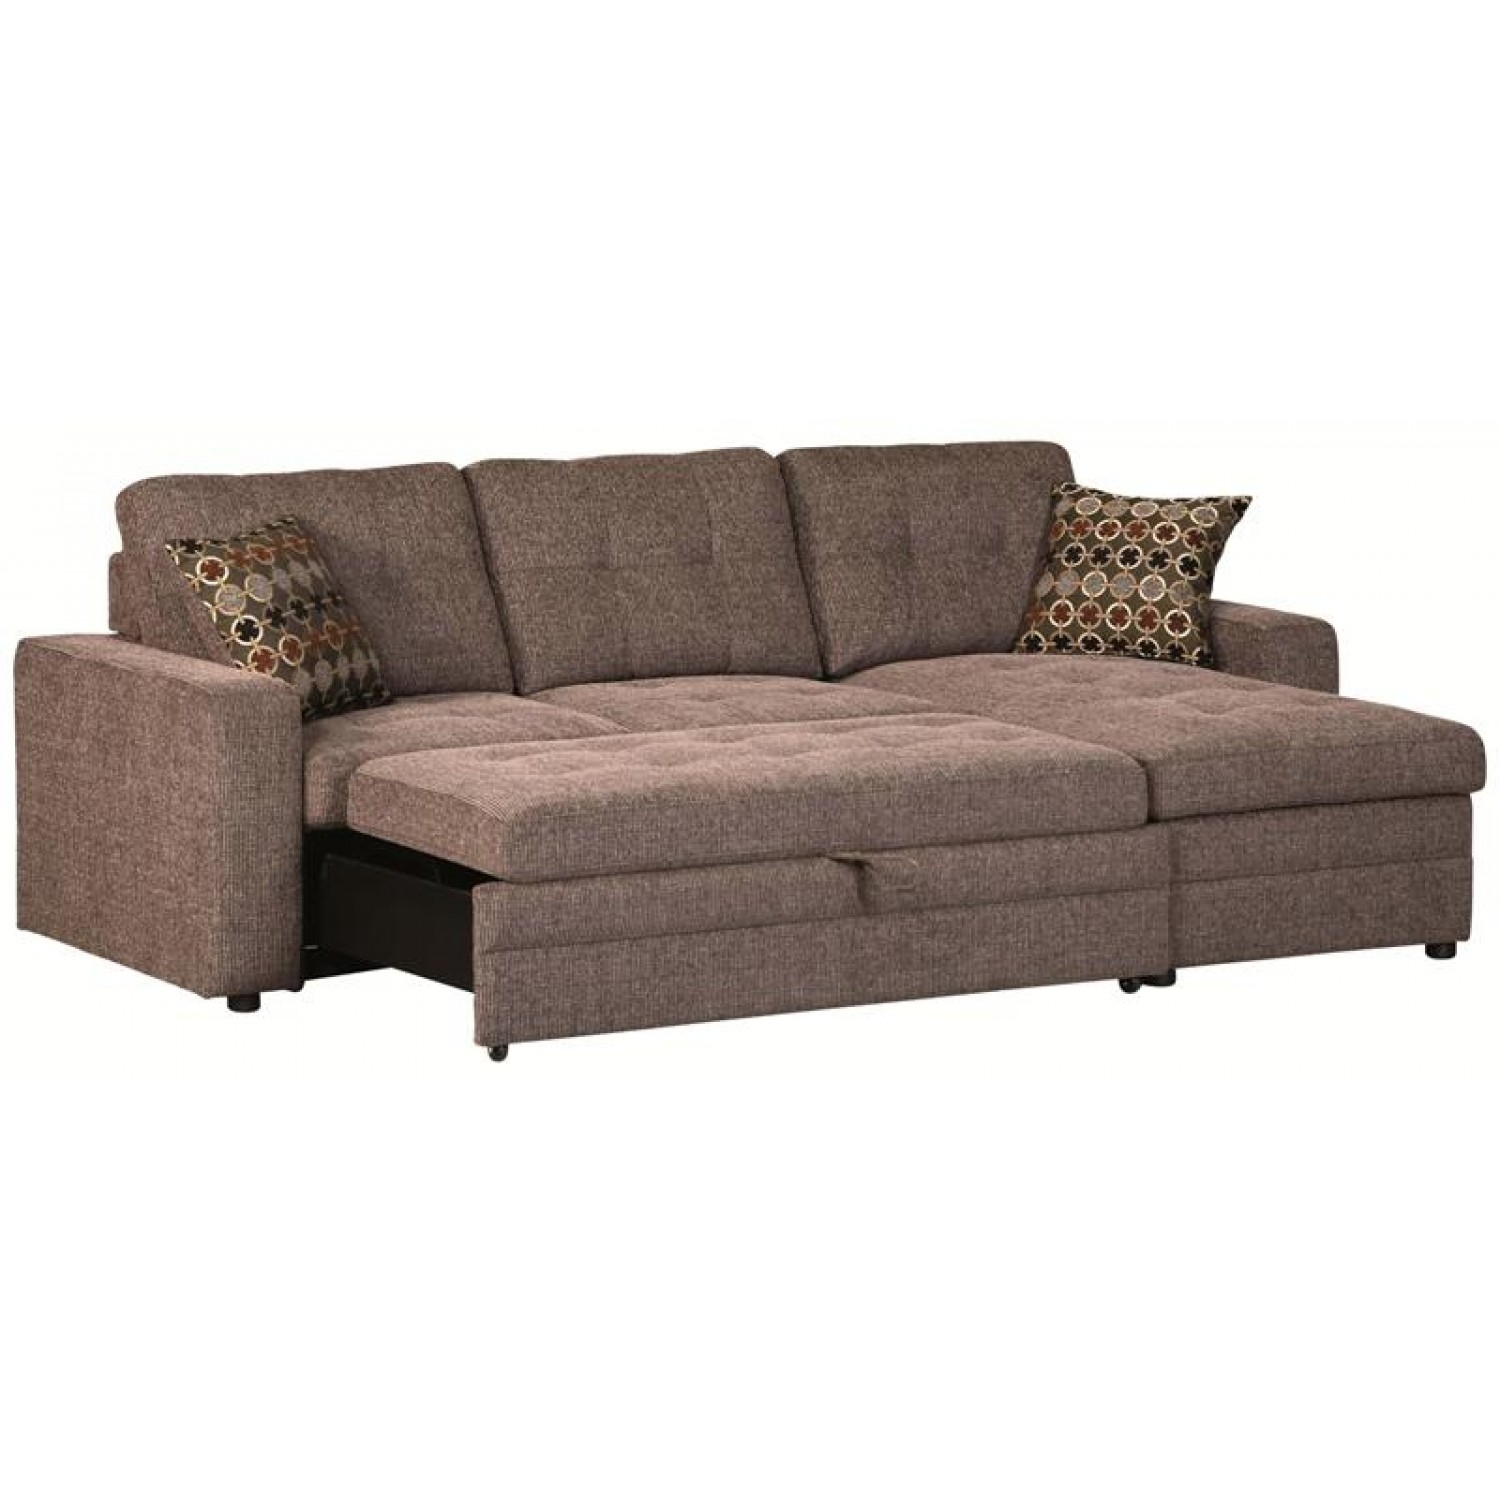 Sectional Bed Sofa Sofa With Bed Pull Out